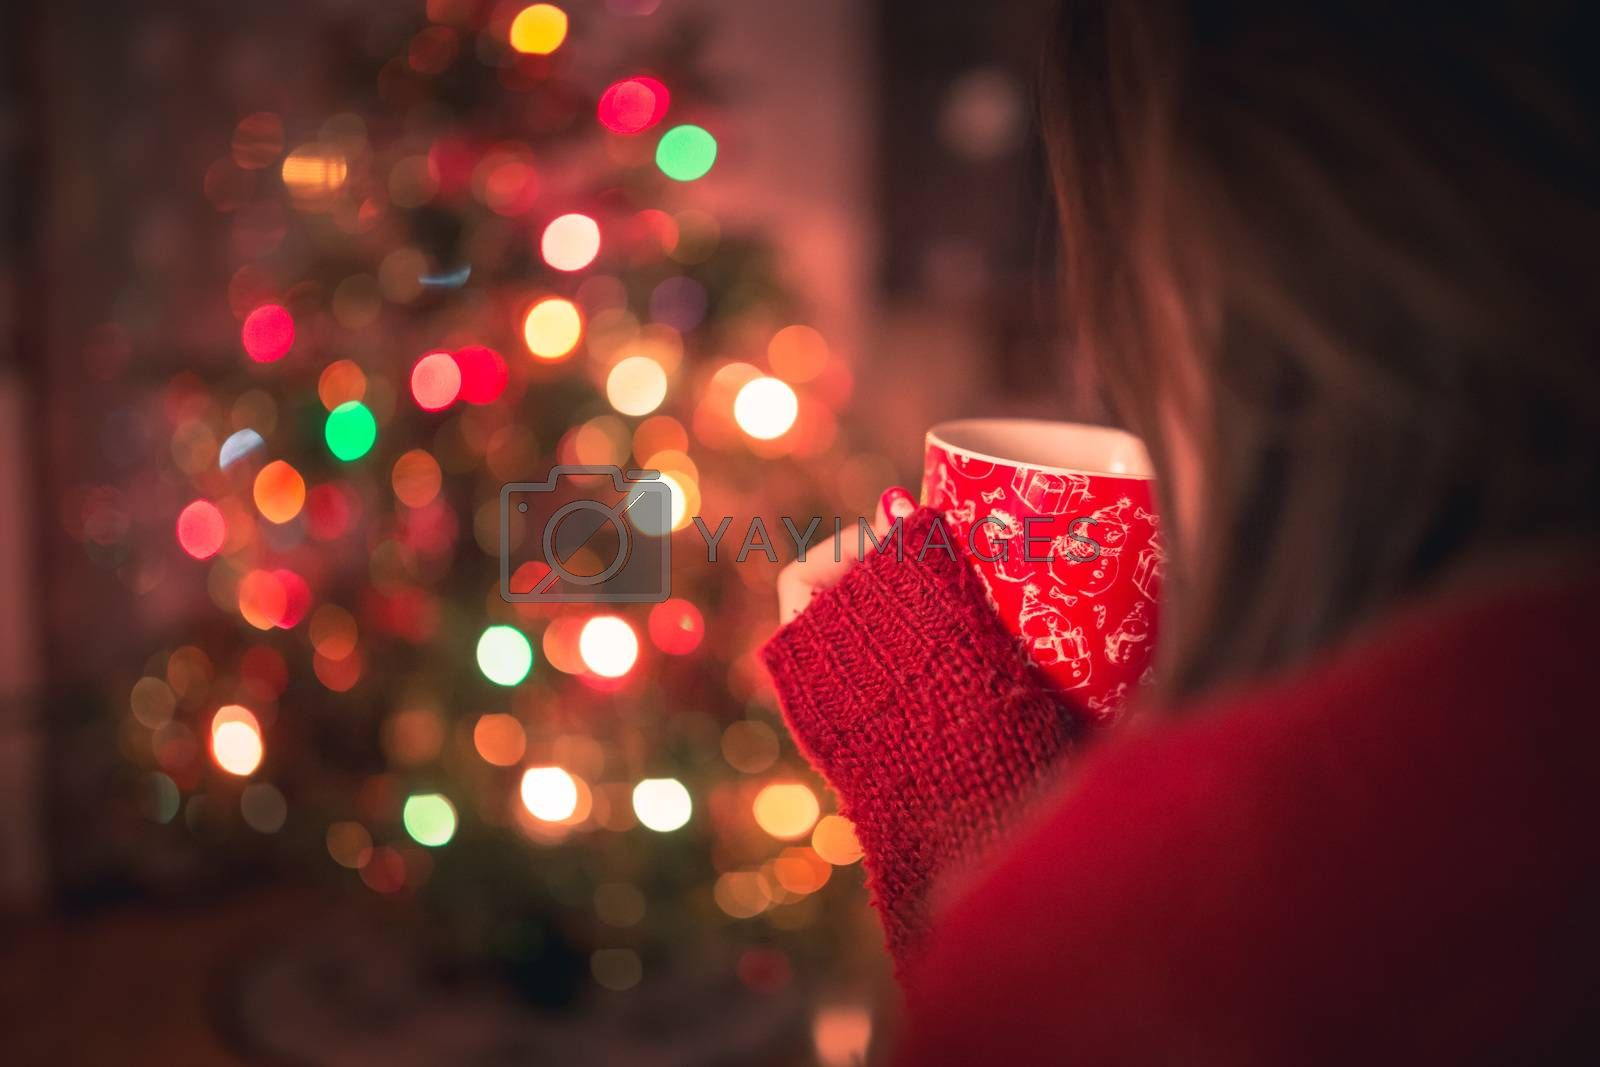 Royalty free image of Young woman with cup of hot chocolate or tea or coffee in front of Christmas tree. Relaxing and christmas concept. by petrsvoboda91